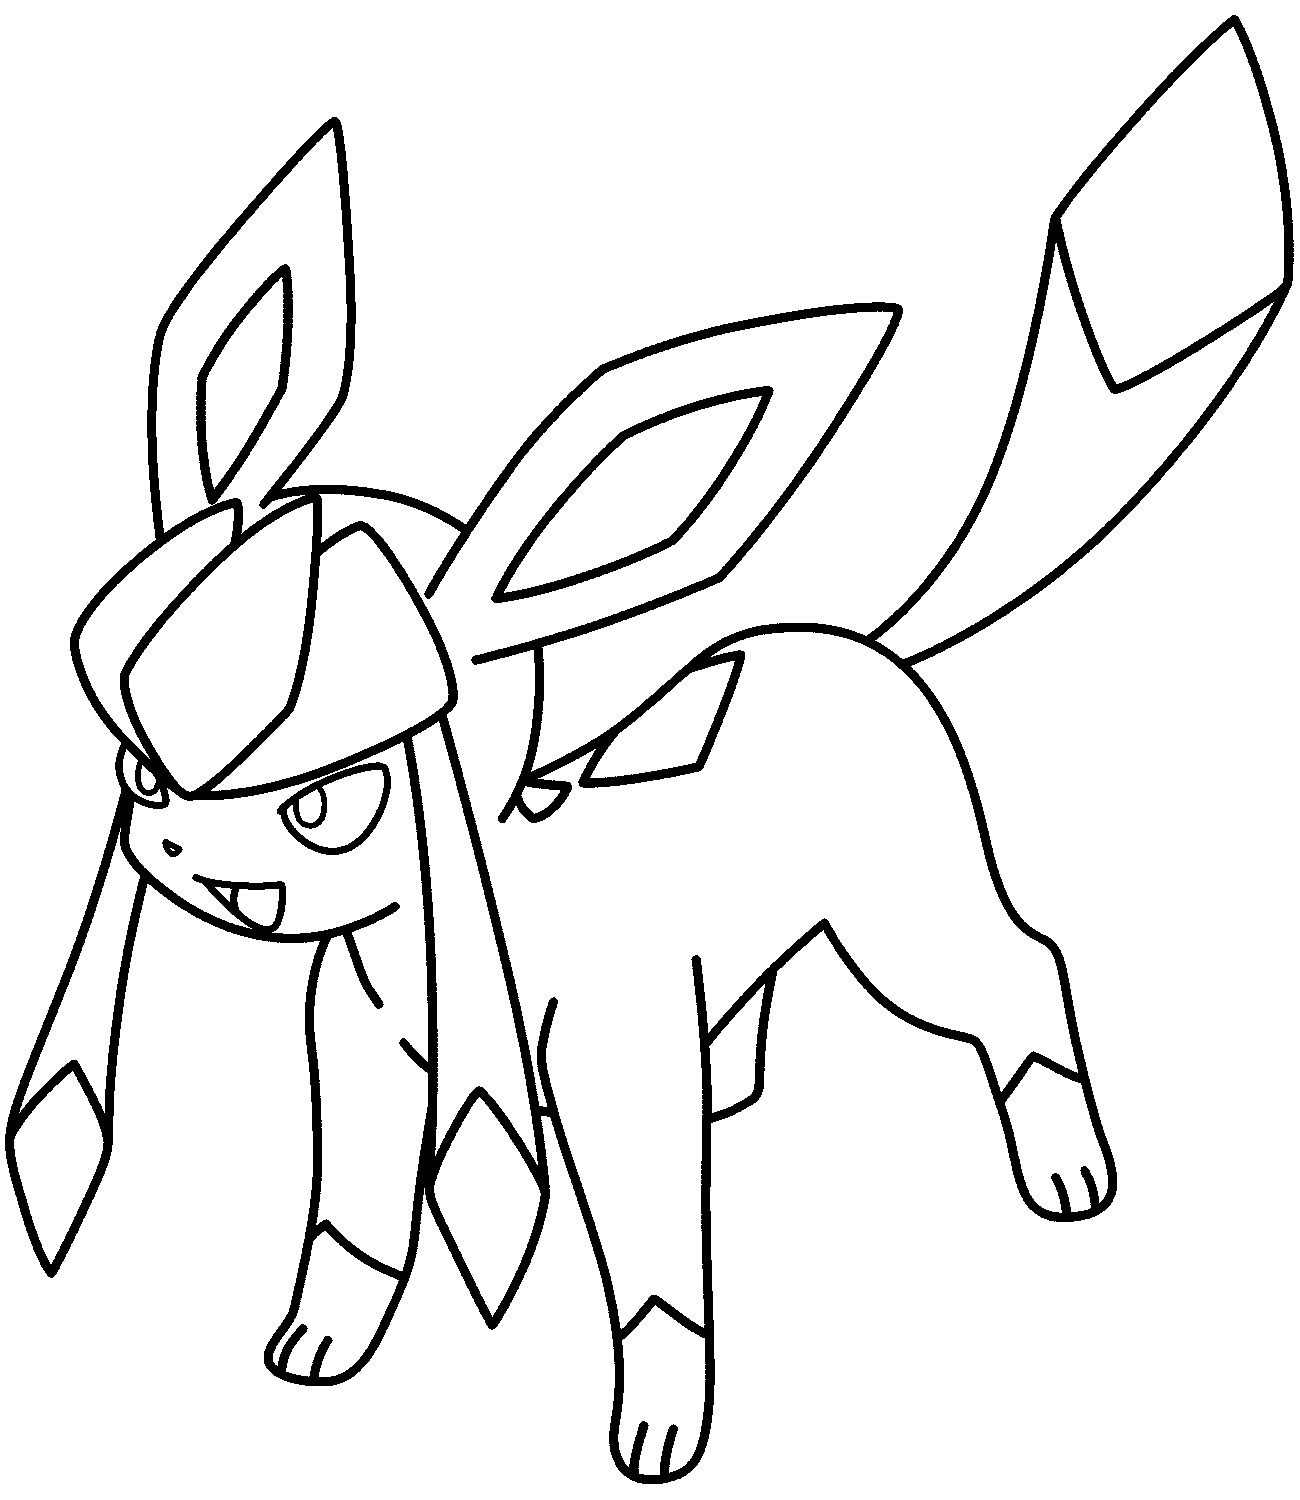 color pokemon grass type pokemon coloring pages at getcoloringscom color pokemon